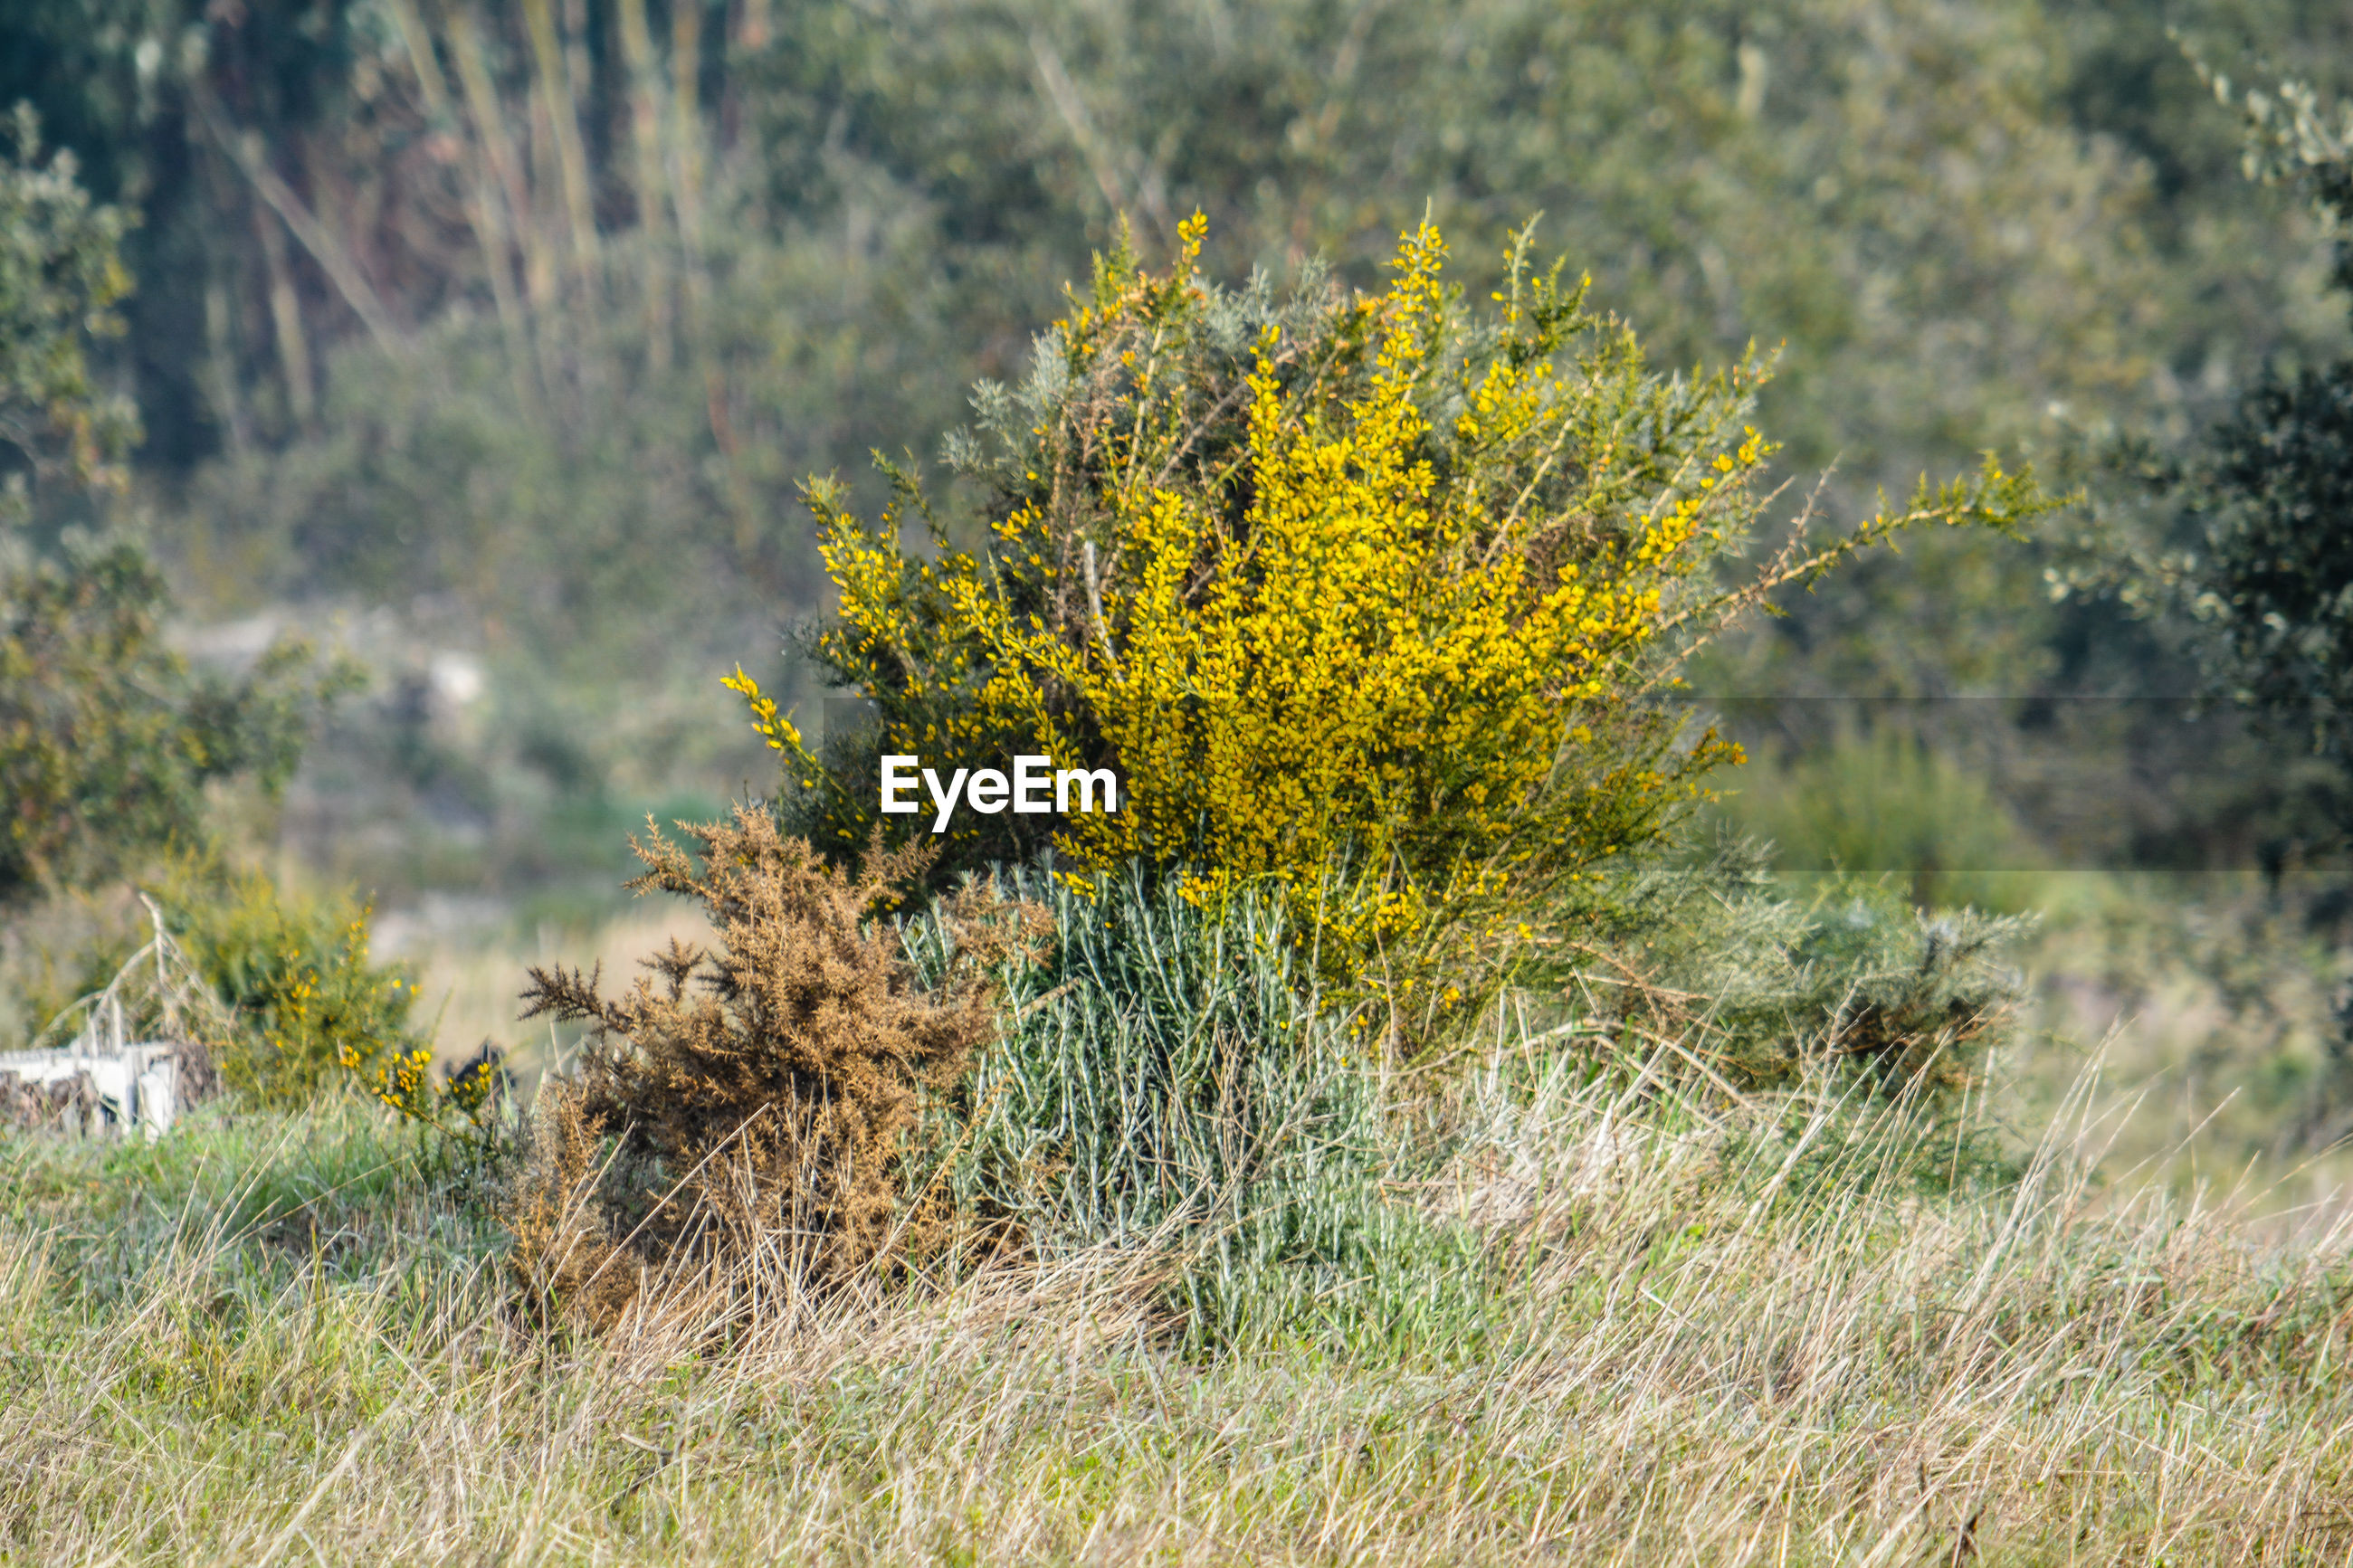 Yellow flowering plant on field